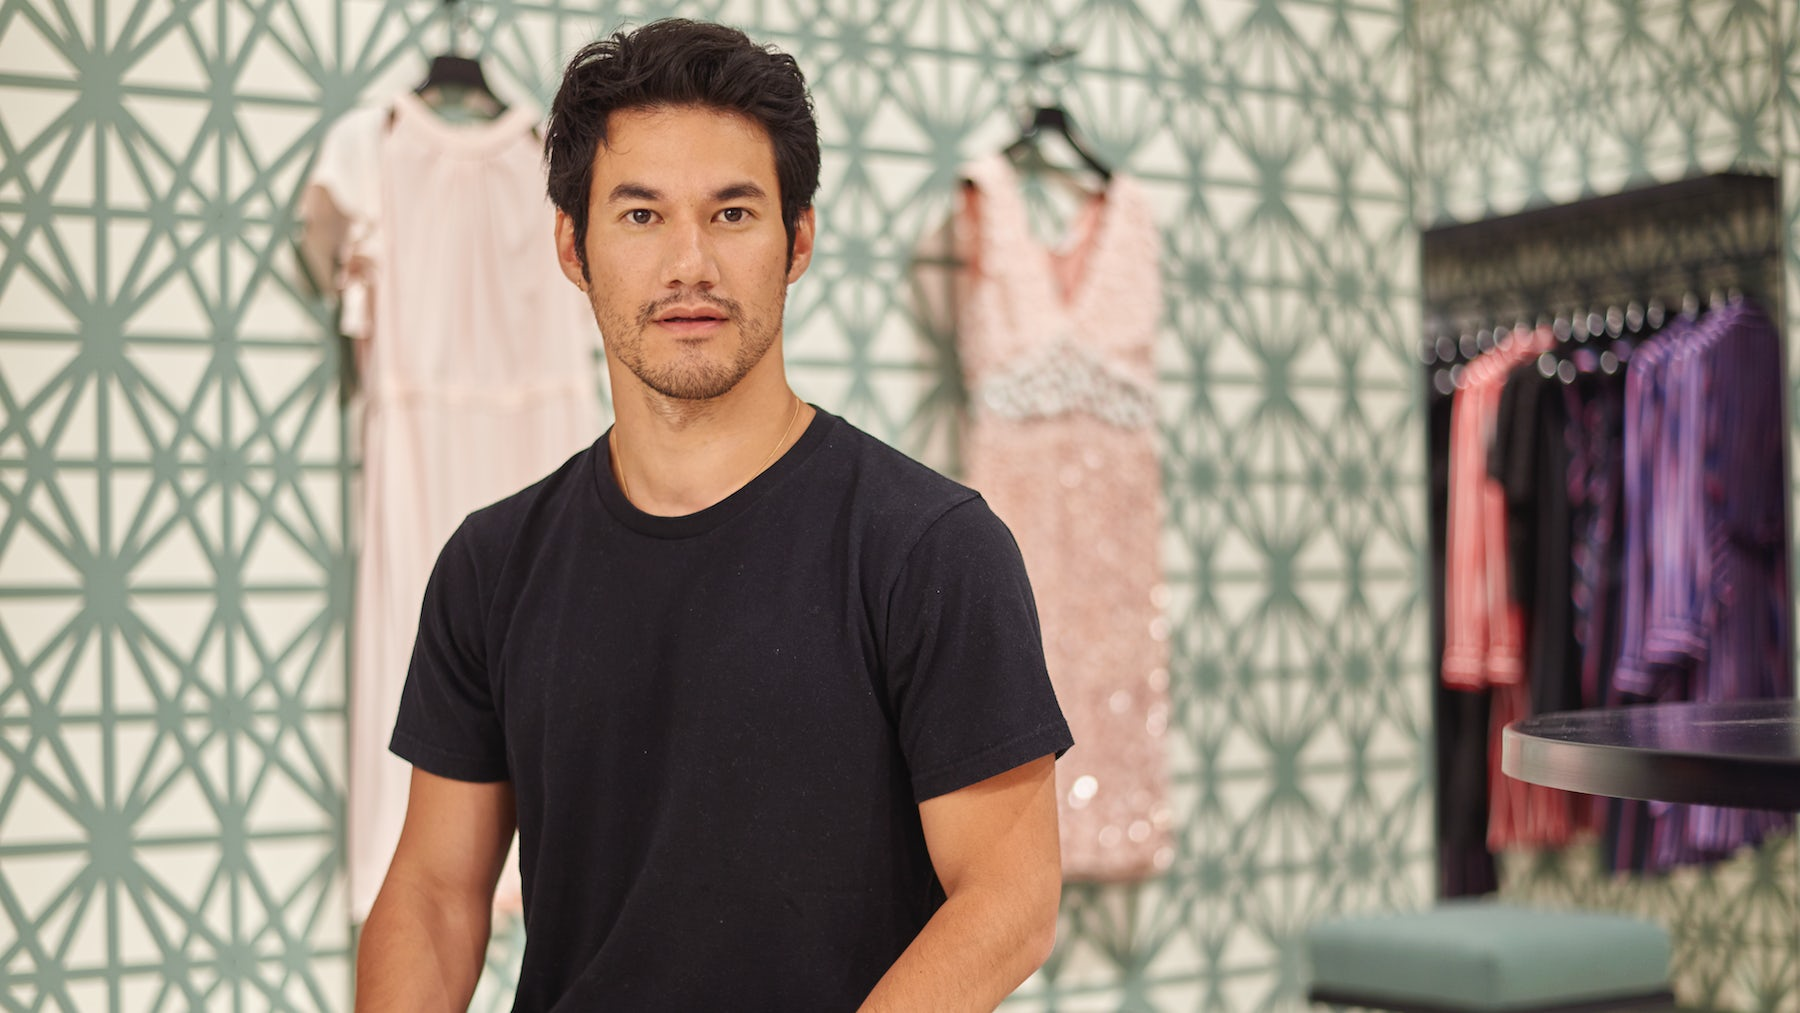 Joseph Altuzarra at his  shop-in-shop in Saks Fifth Avenue's New York City flagship. | Photo: Richie Talboy for BoF